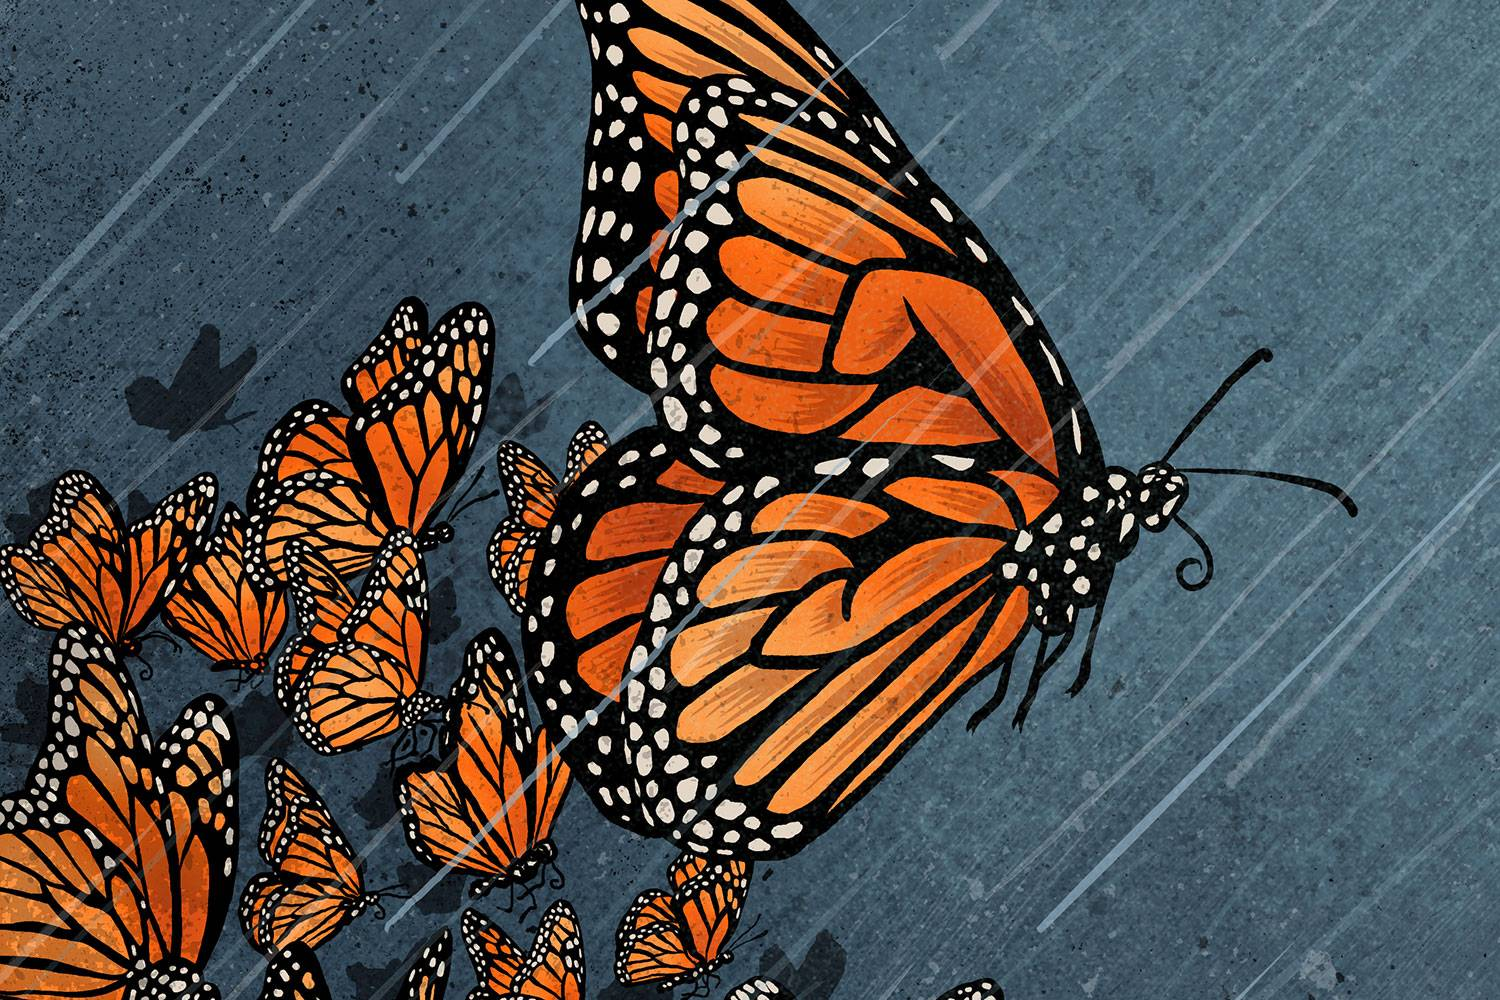 Monarch butterflies illustration